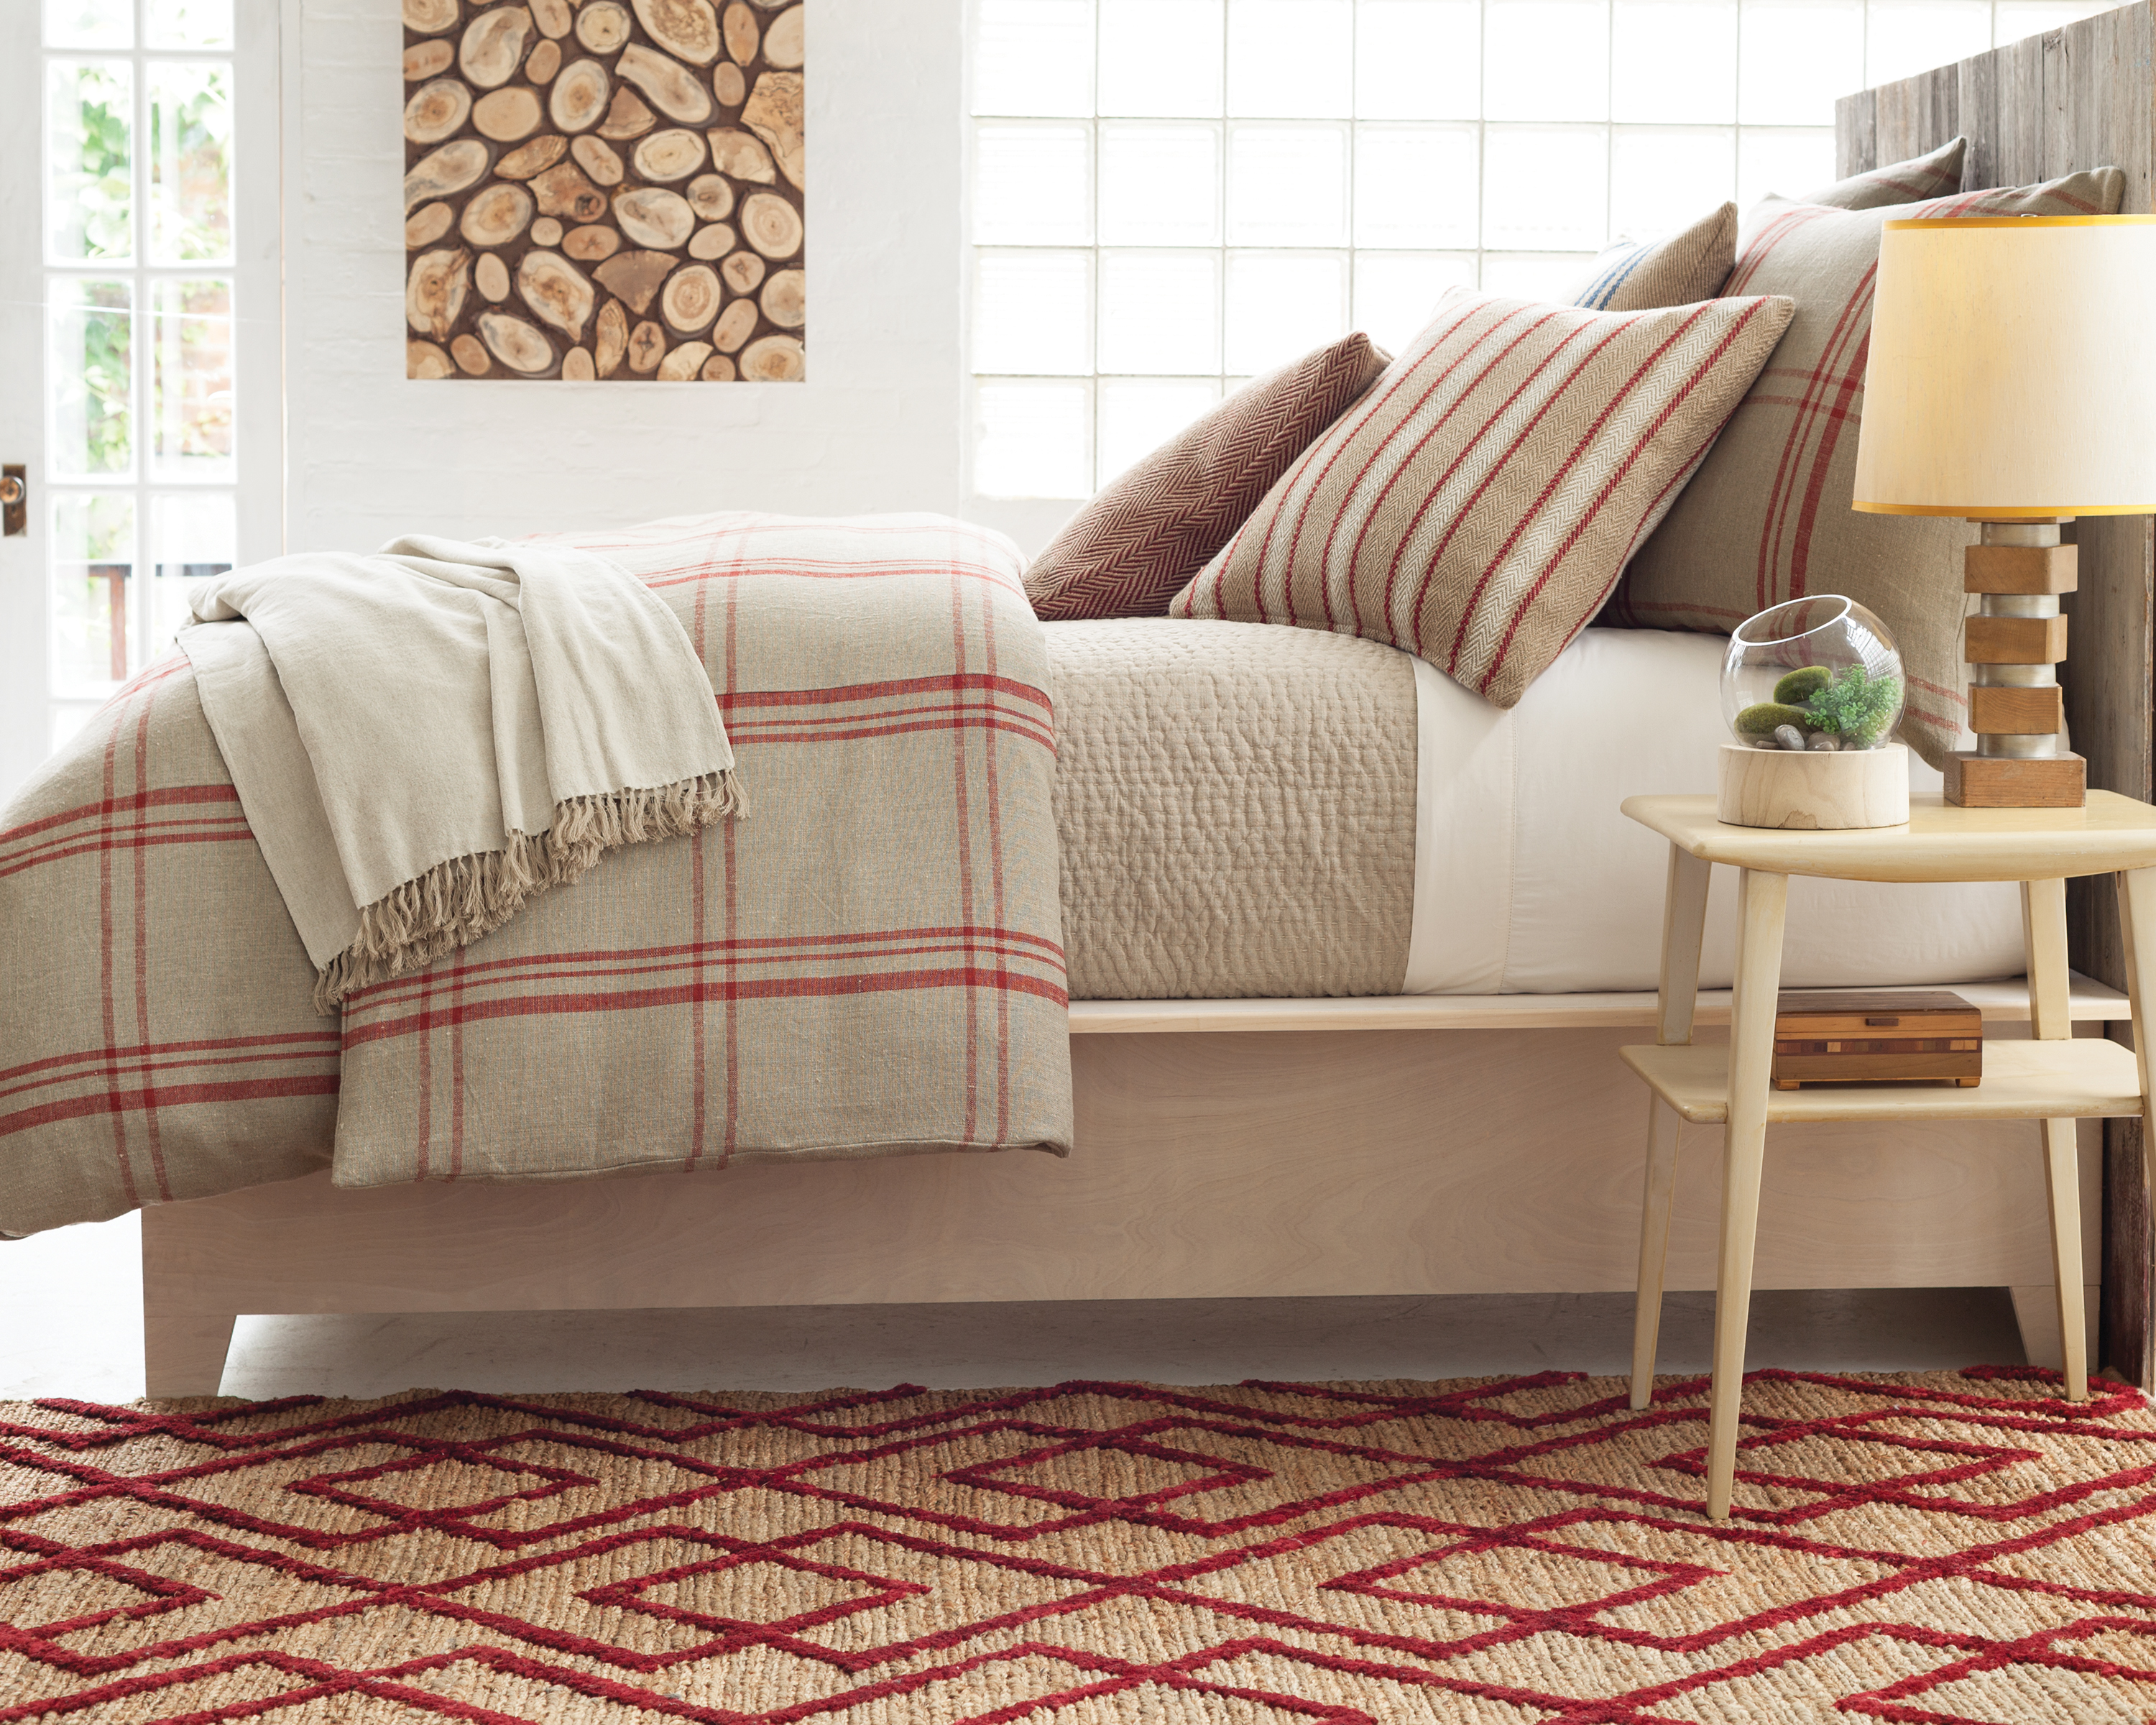 Country Redux Rustic Refined Bedroom Design